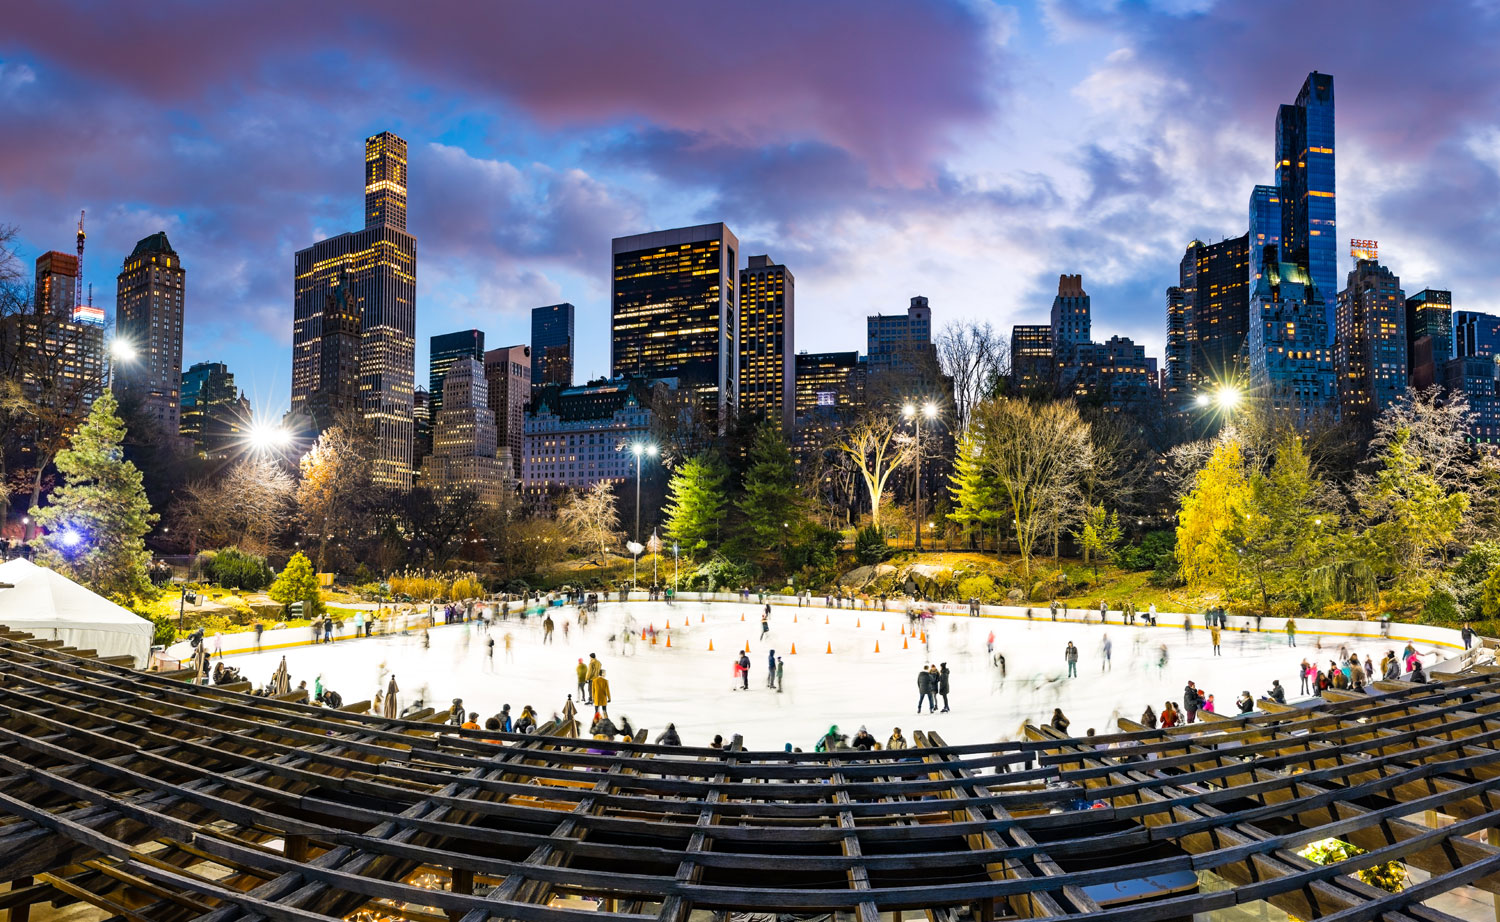 Ice skating has been a winter tradition in New York City's Central Park since 1858, as old as the park itself. With its iconic views of the New York City skyline, the city's finest skating venue is the Wollman Rink, located at the southeast corner of Central Park. Close by is the Lasker Rink, at the north end of the park, and the Big Apple's famous Rink at Rockefeller Center.